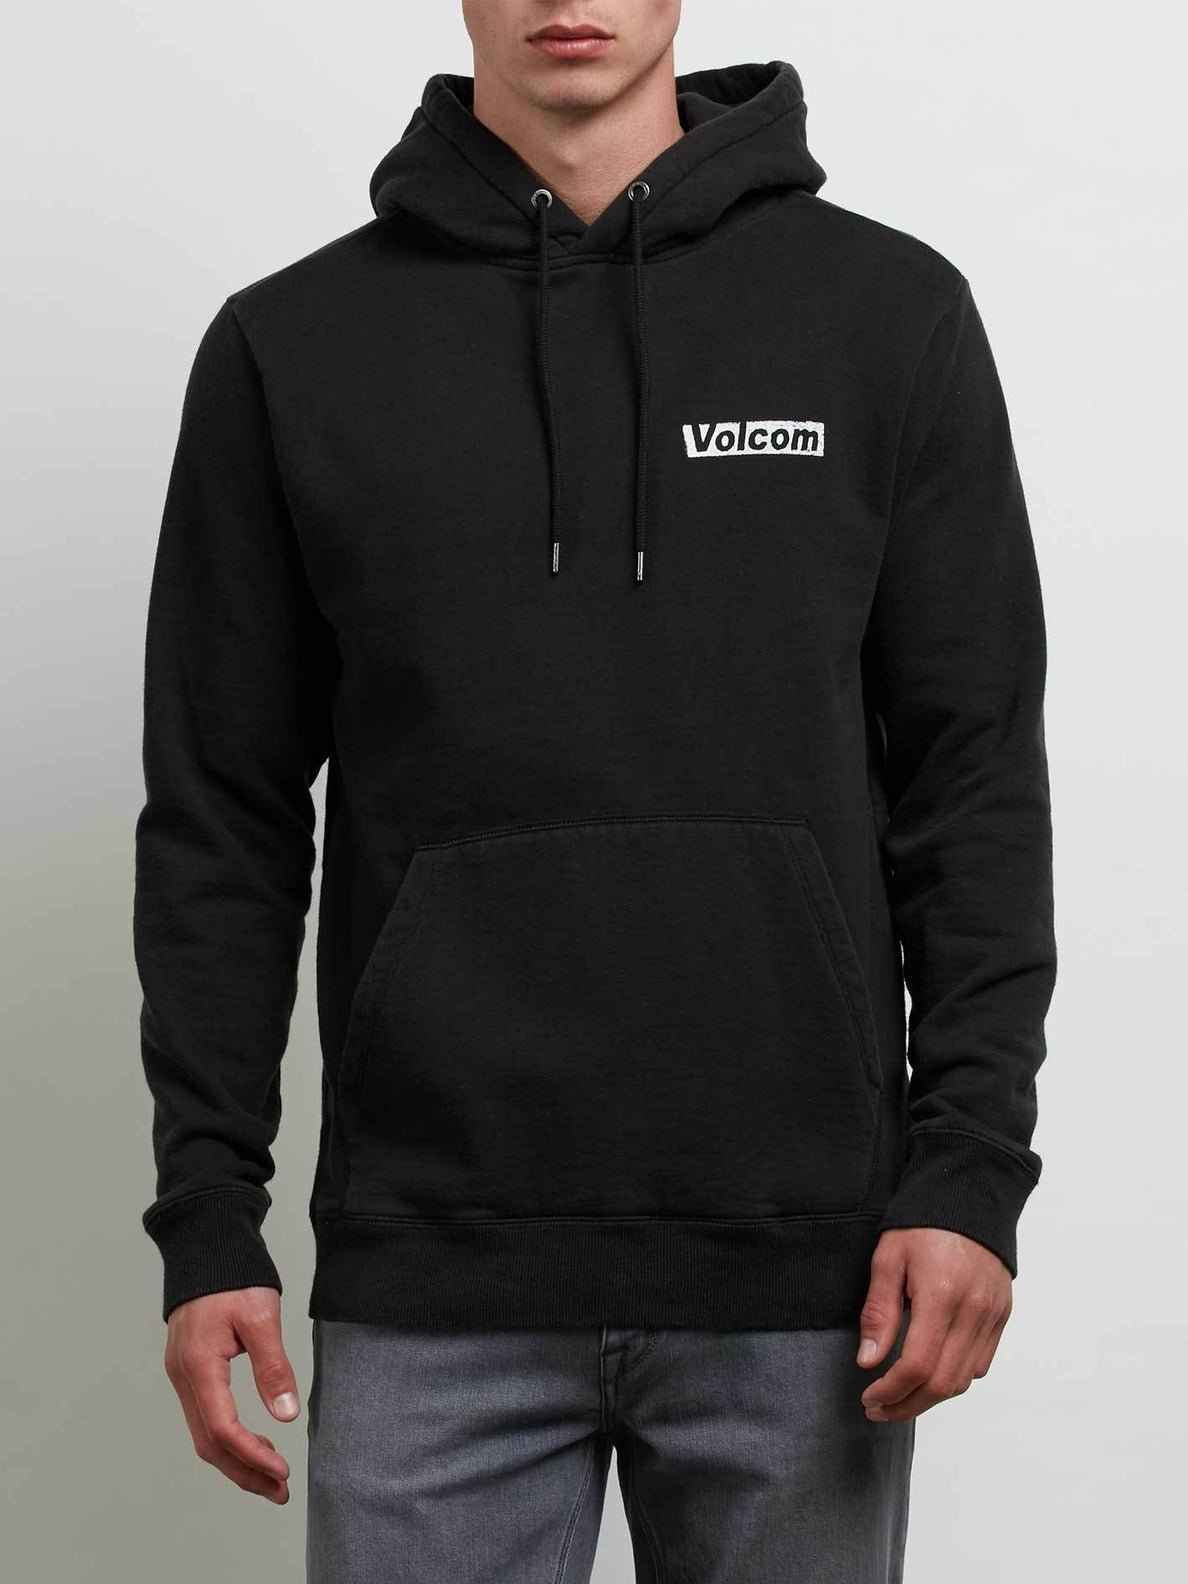 Reload Pullover Hoodie In Washed Black, Front View